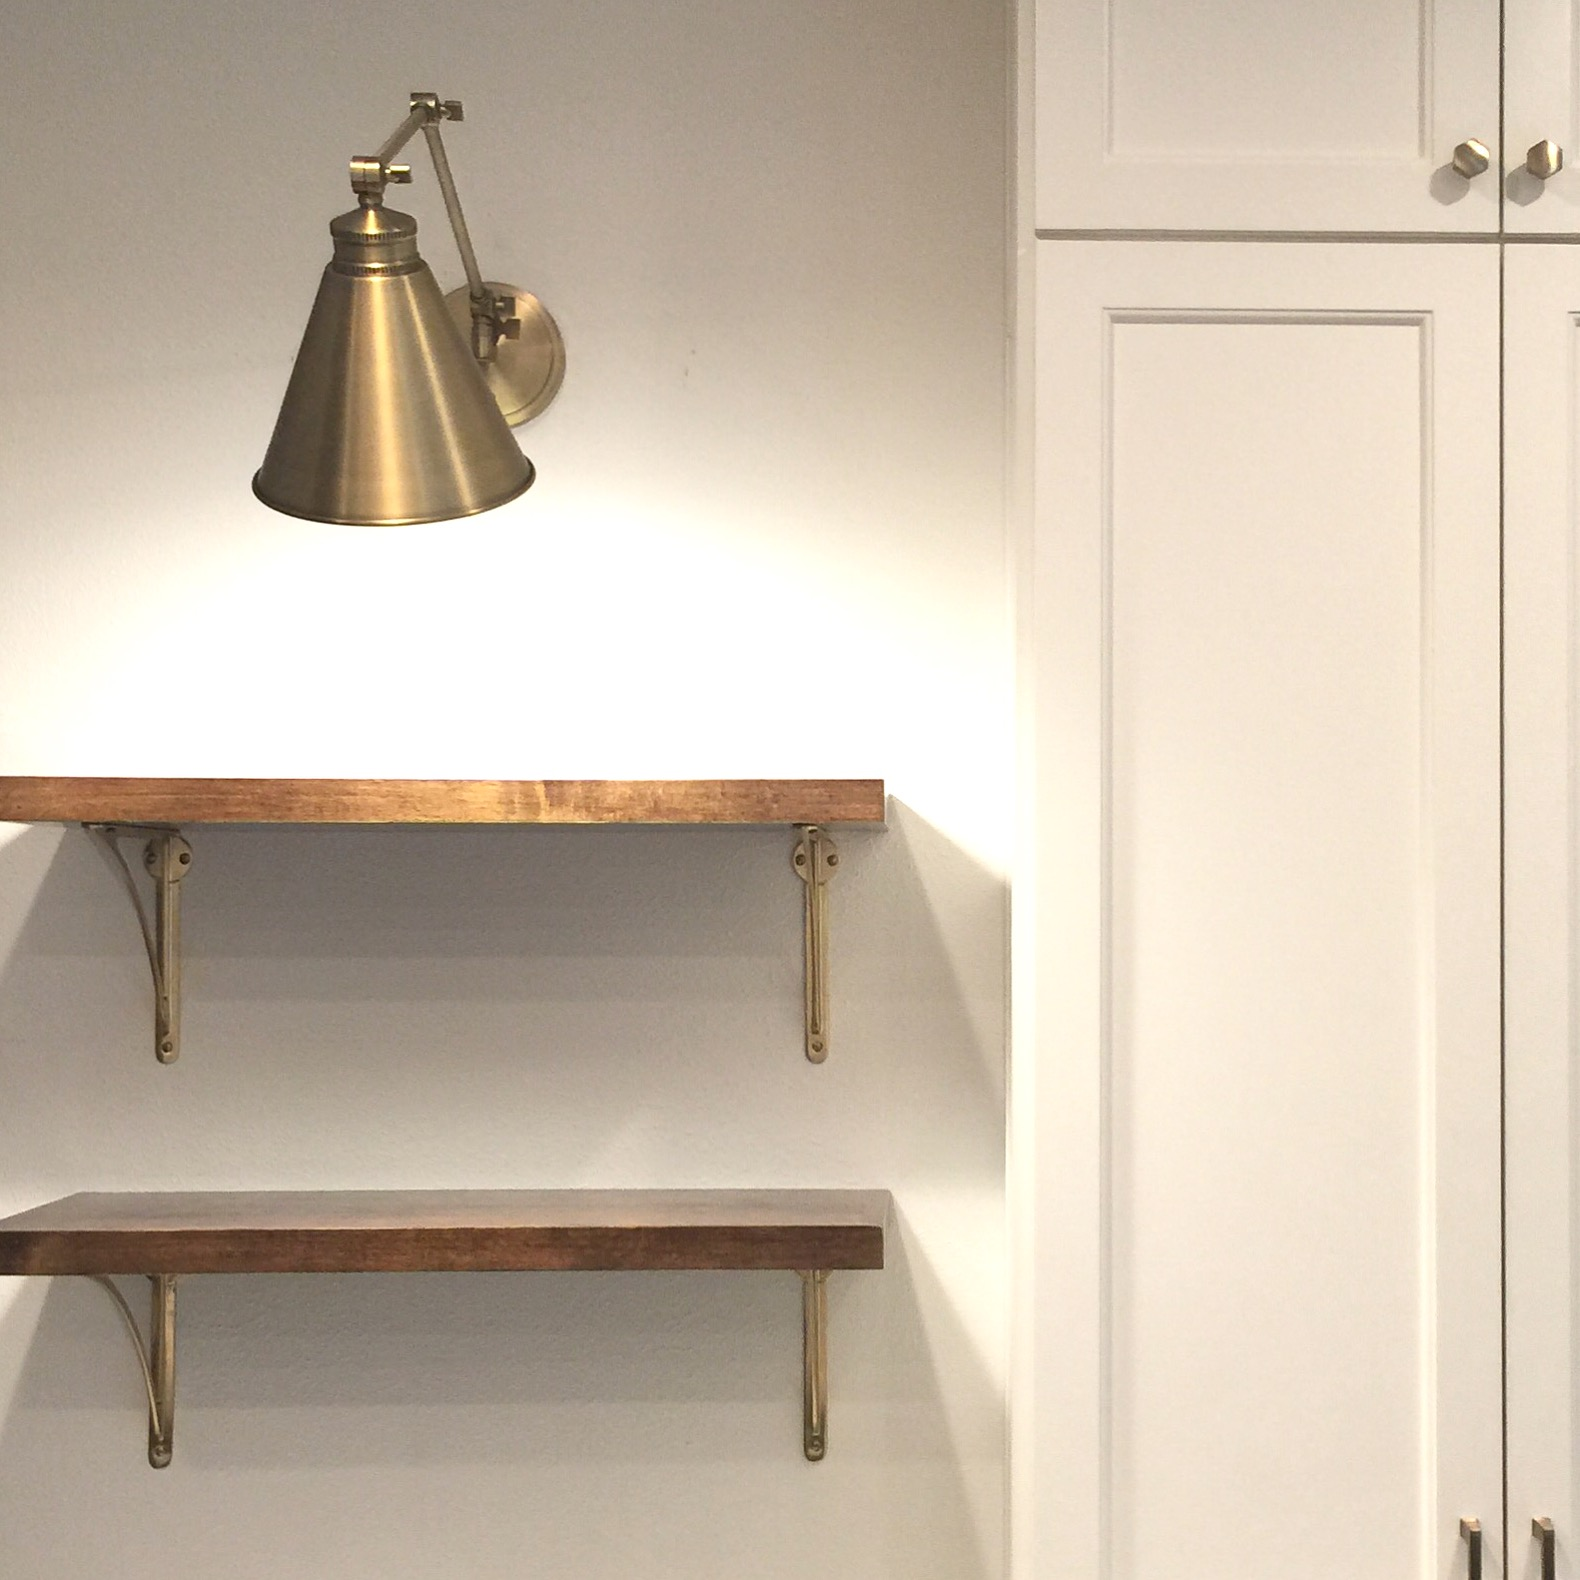 open shelving with brass brackets and brass sconce